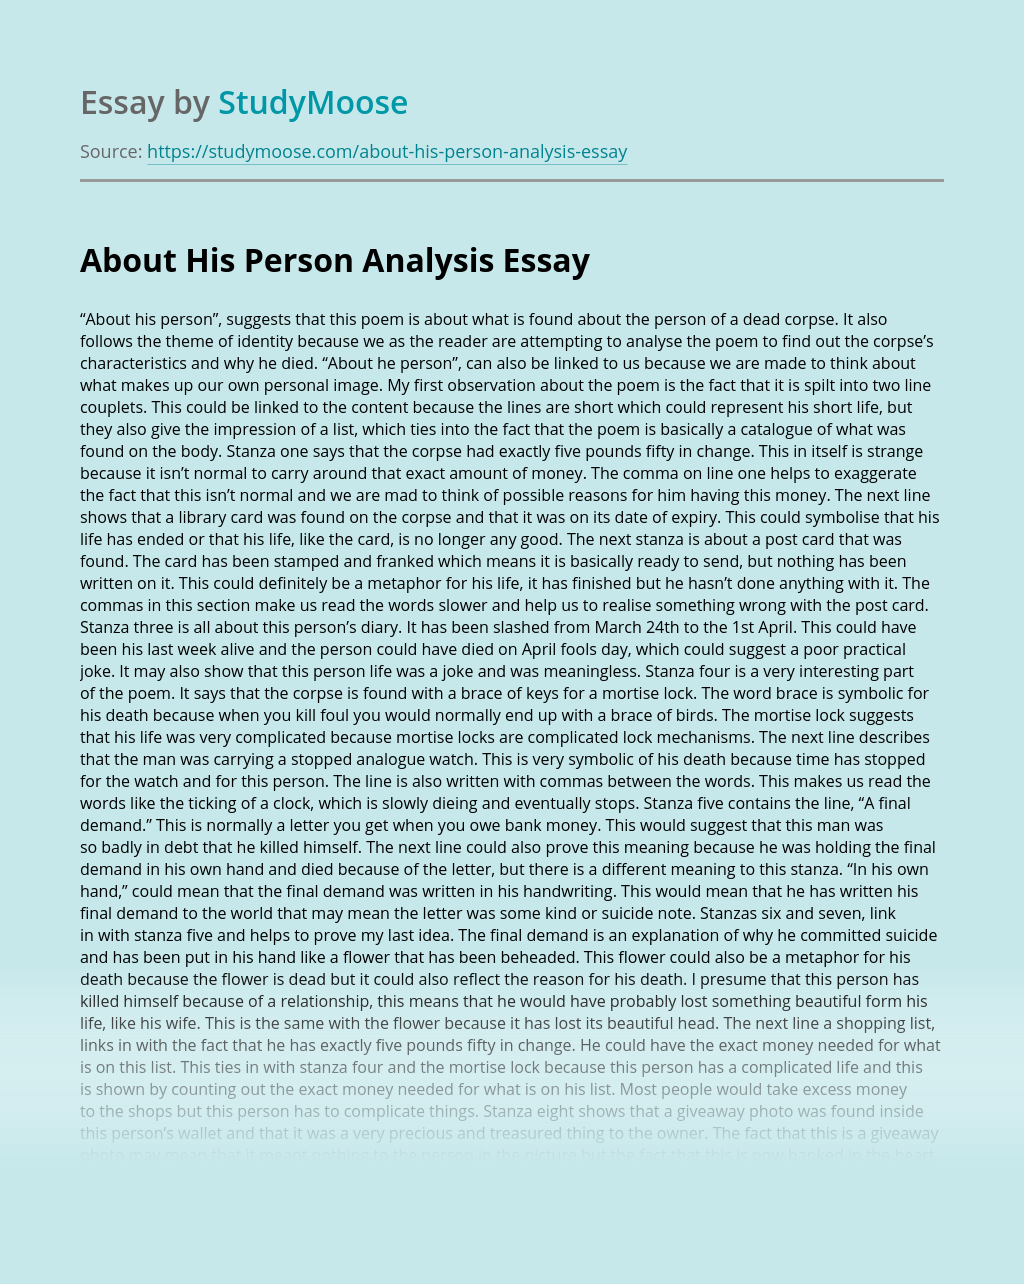 About His Person Analysis